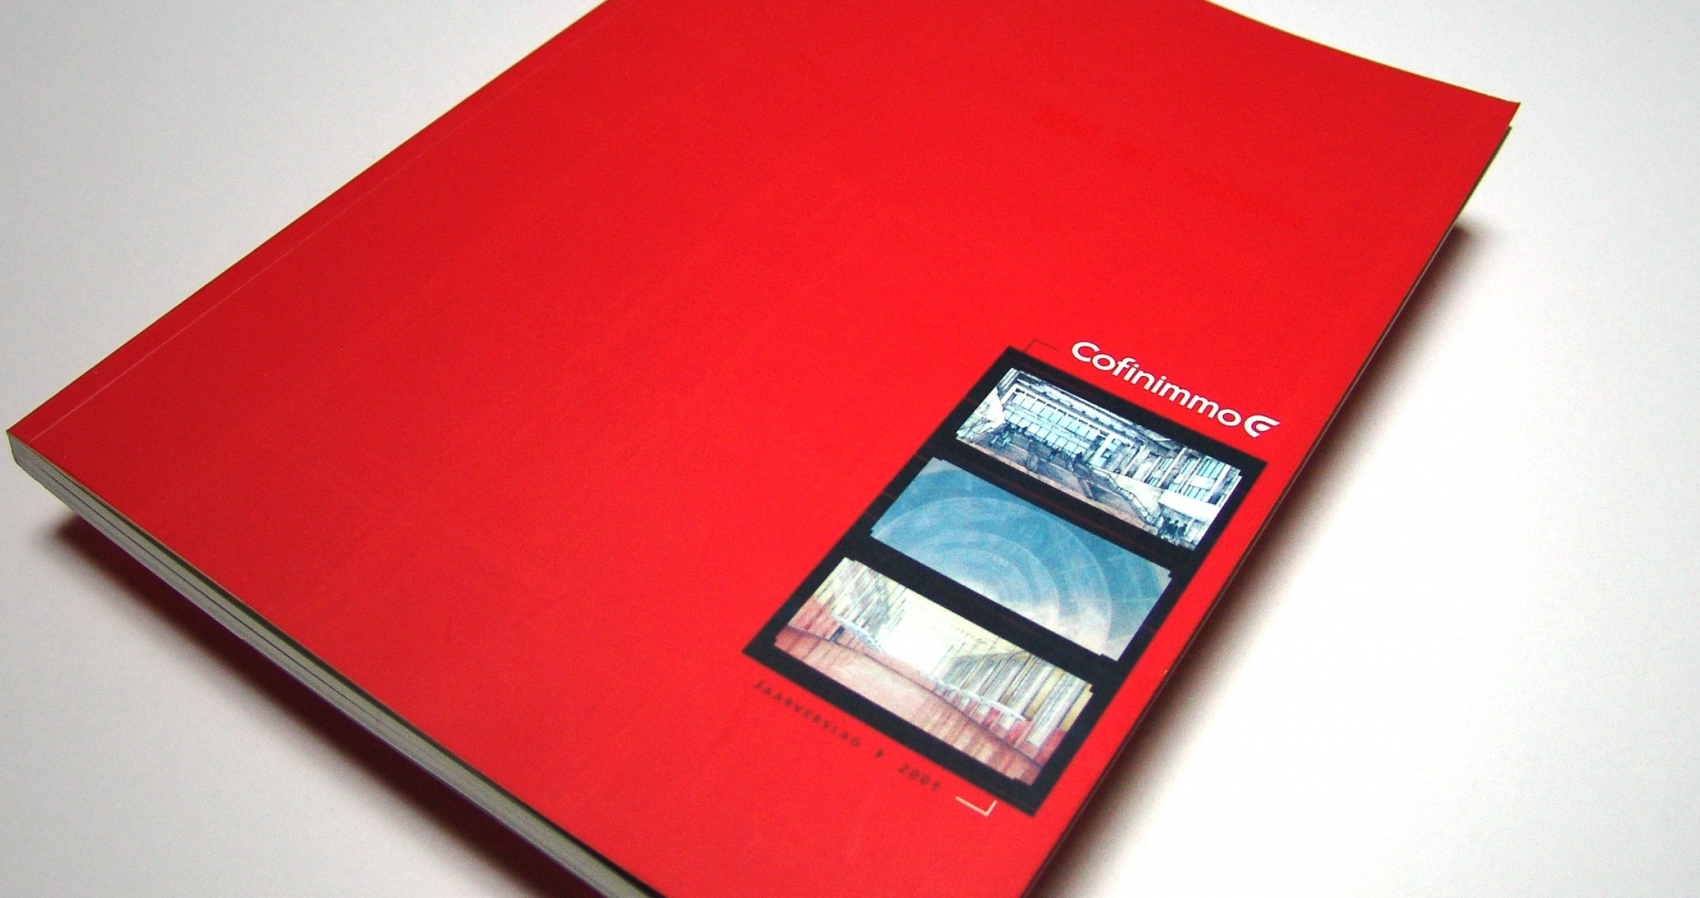 Cofinimmo - Annual Report 2001